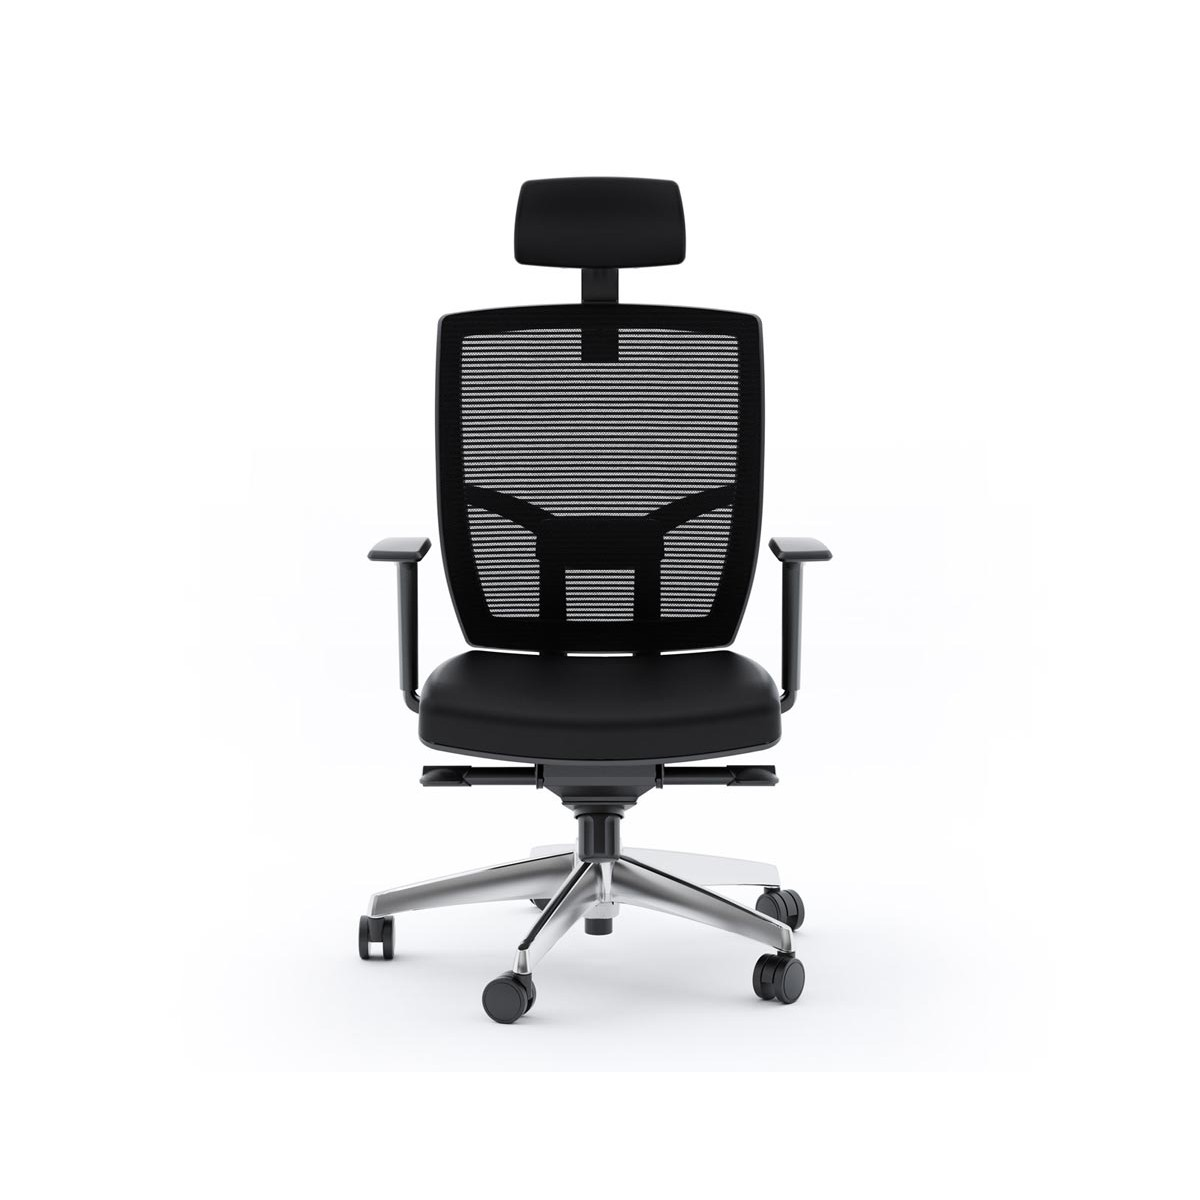 bdi tc 223 dhl office chair leather seat from 499 00 by bdi